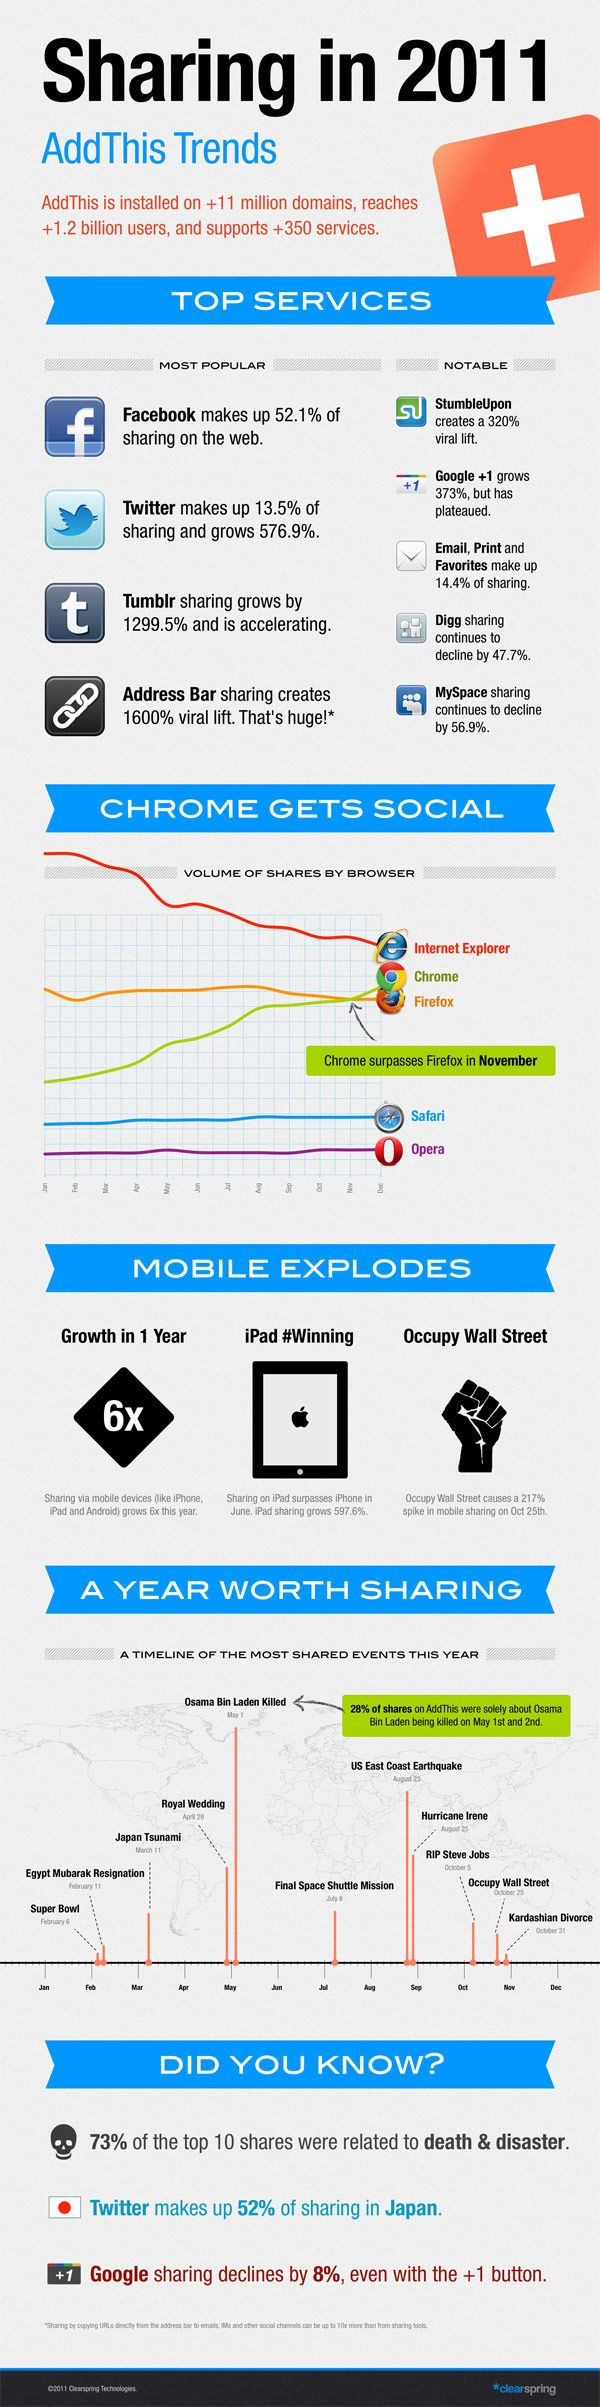 Check out these amazing social media sharing trends from 2011